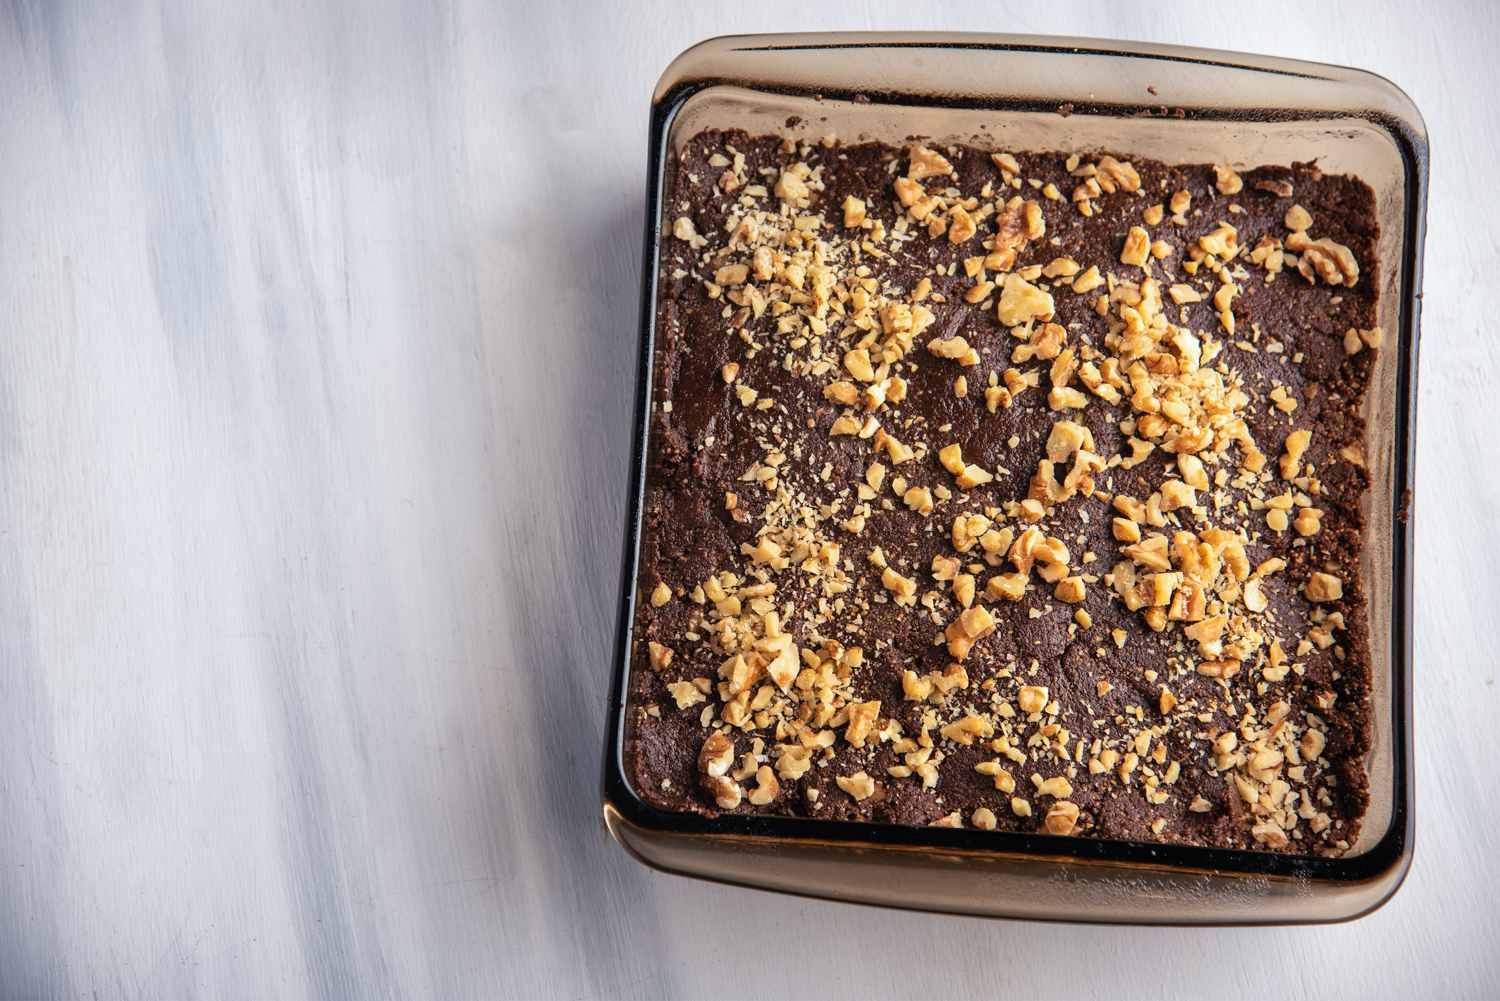 Spread brownie mixture in pan and top with walnuts